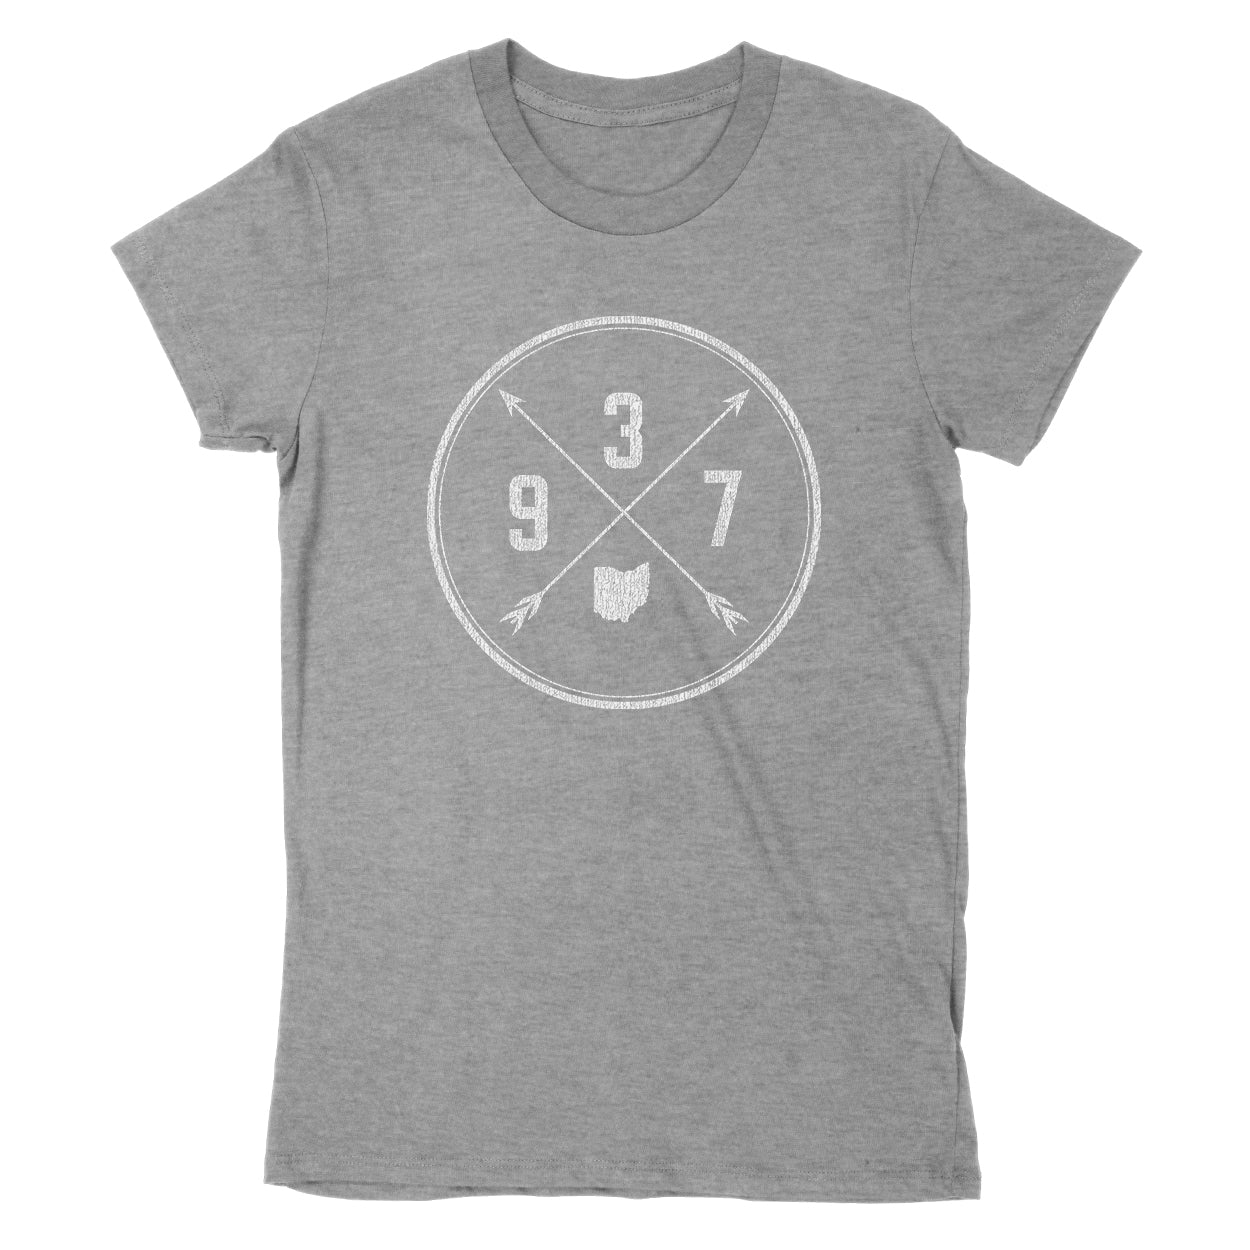 937 Area Code Cross Women's T-Shirt - Clothe Ohio - Soft Ohio Shirts